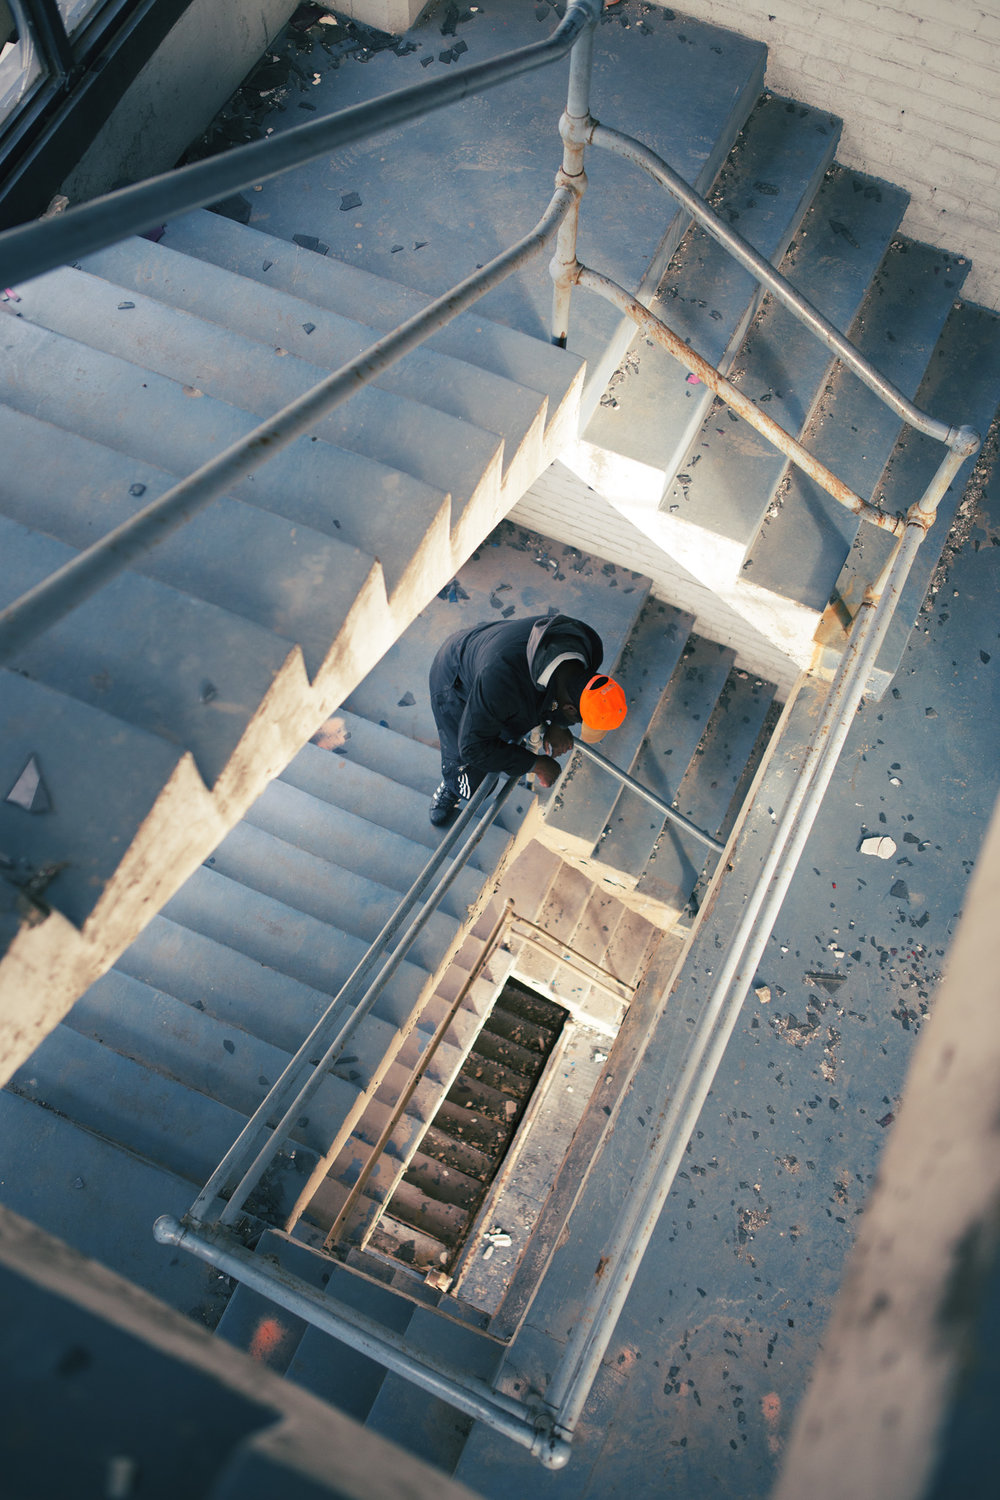 Image of man looking down the abandoned building staircase